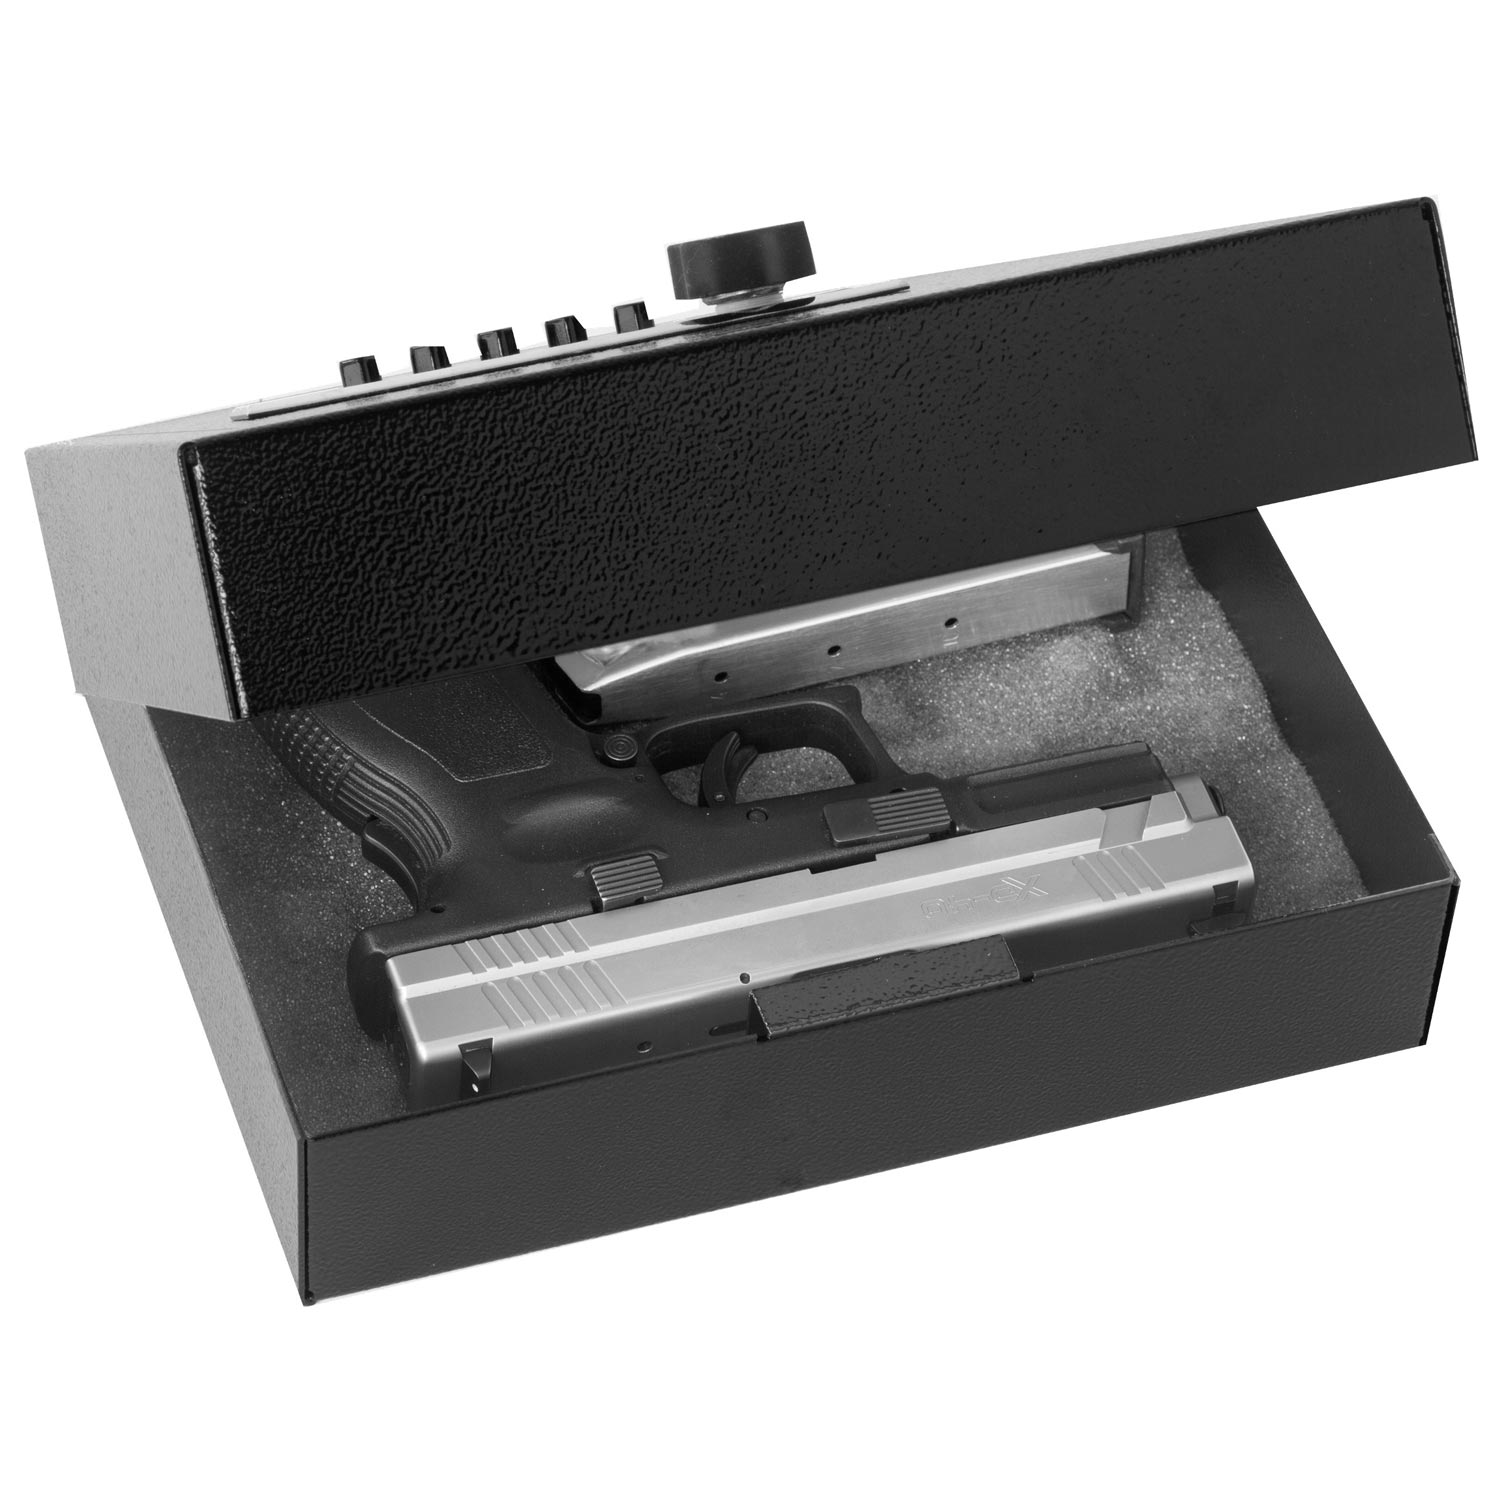 279-S Compact Security Case with Pushbutton Lock - VLN-279-S